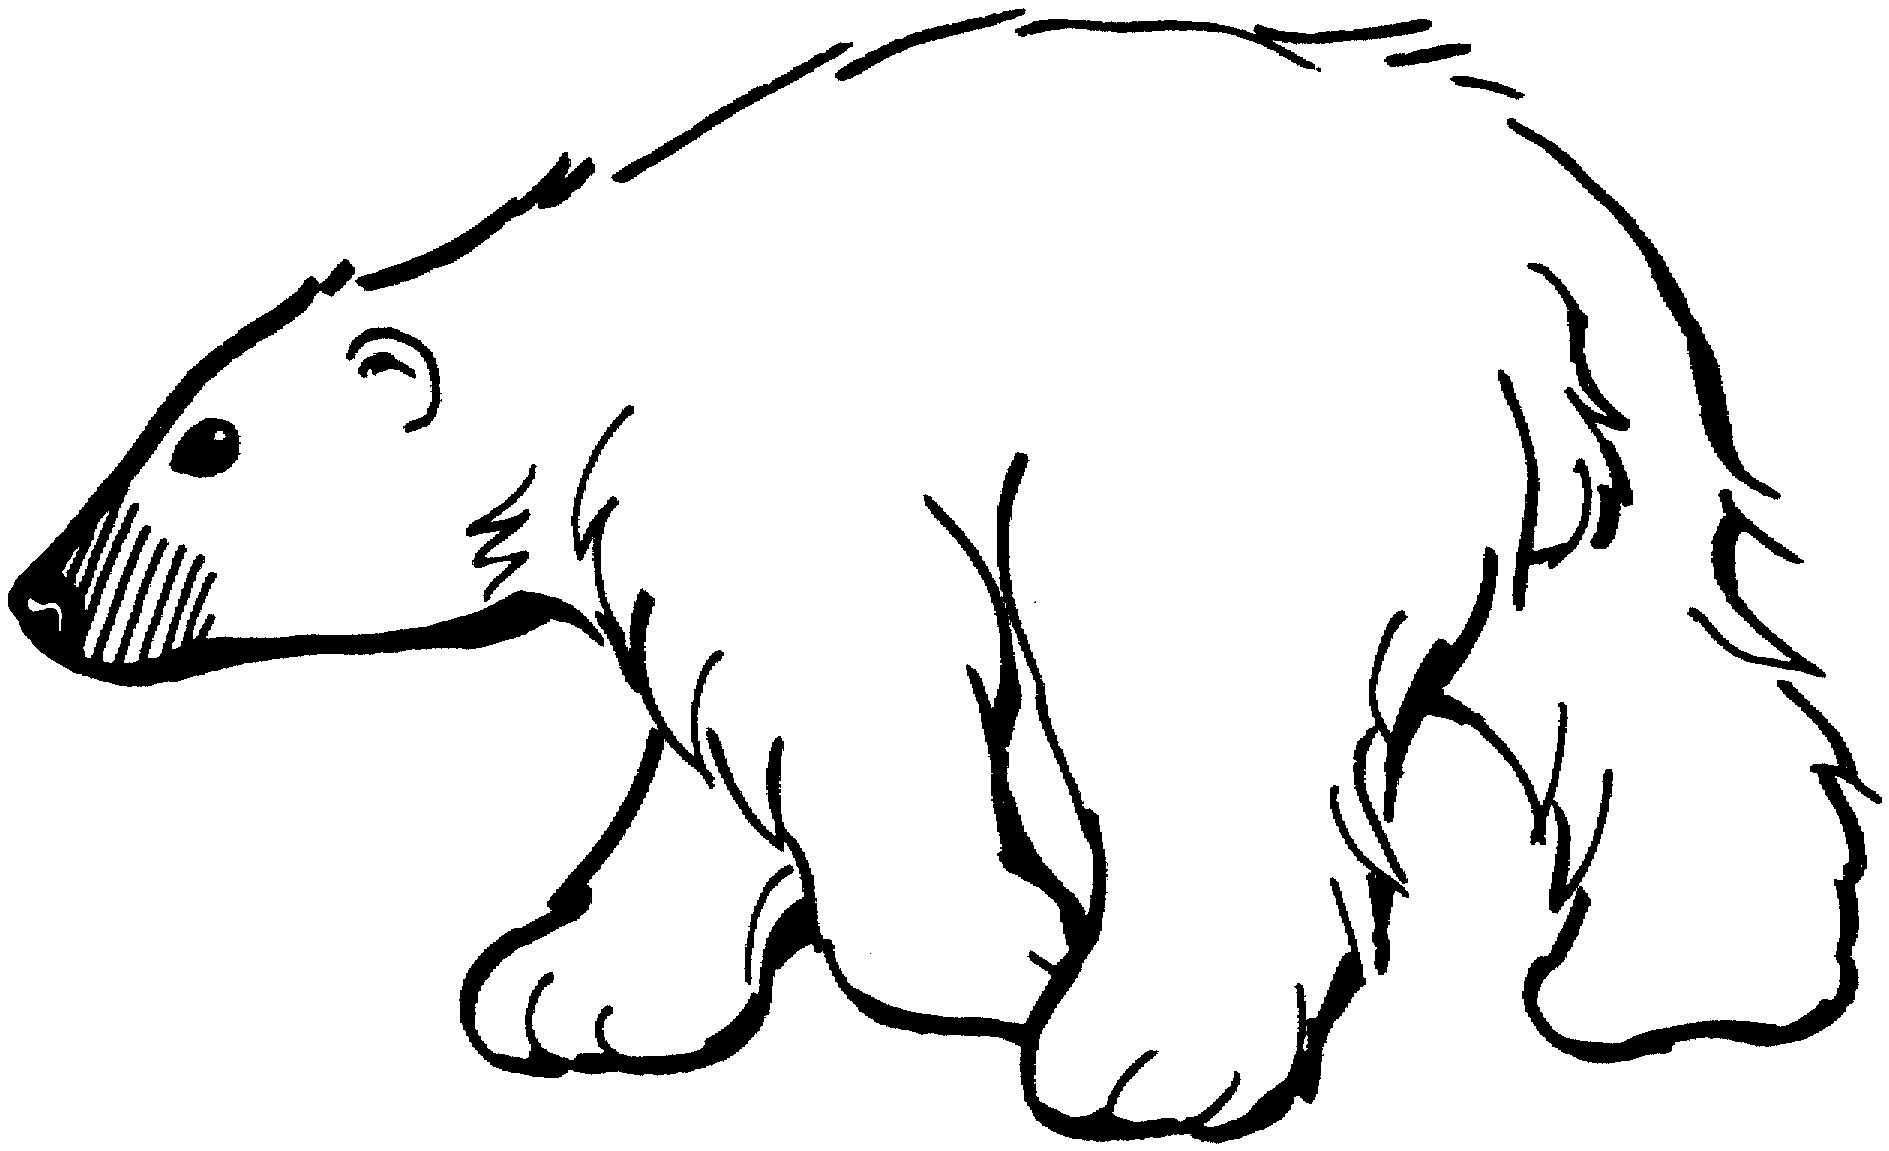 Polar Bear Coloring Page New Free Bear Coloring Pages Kleurplaten Ijsbeer Silhouet